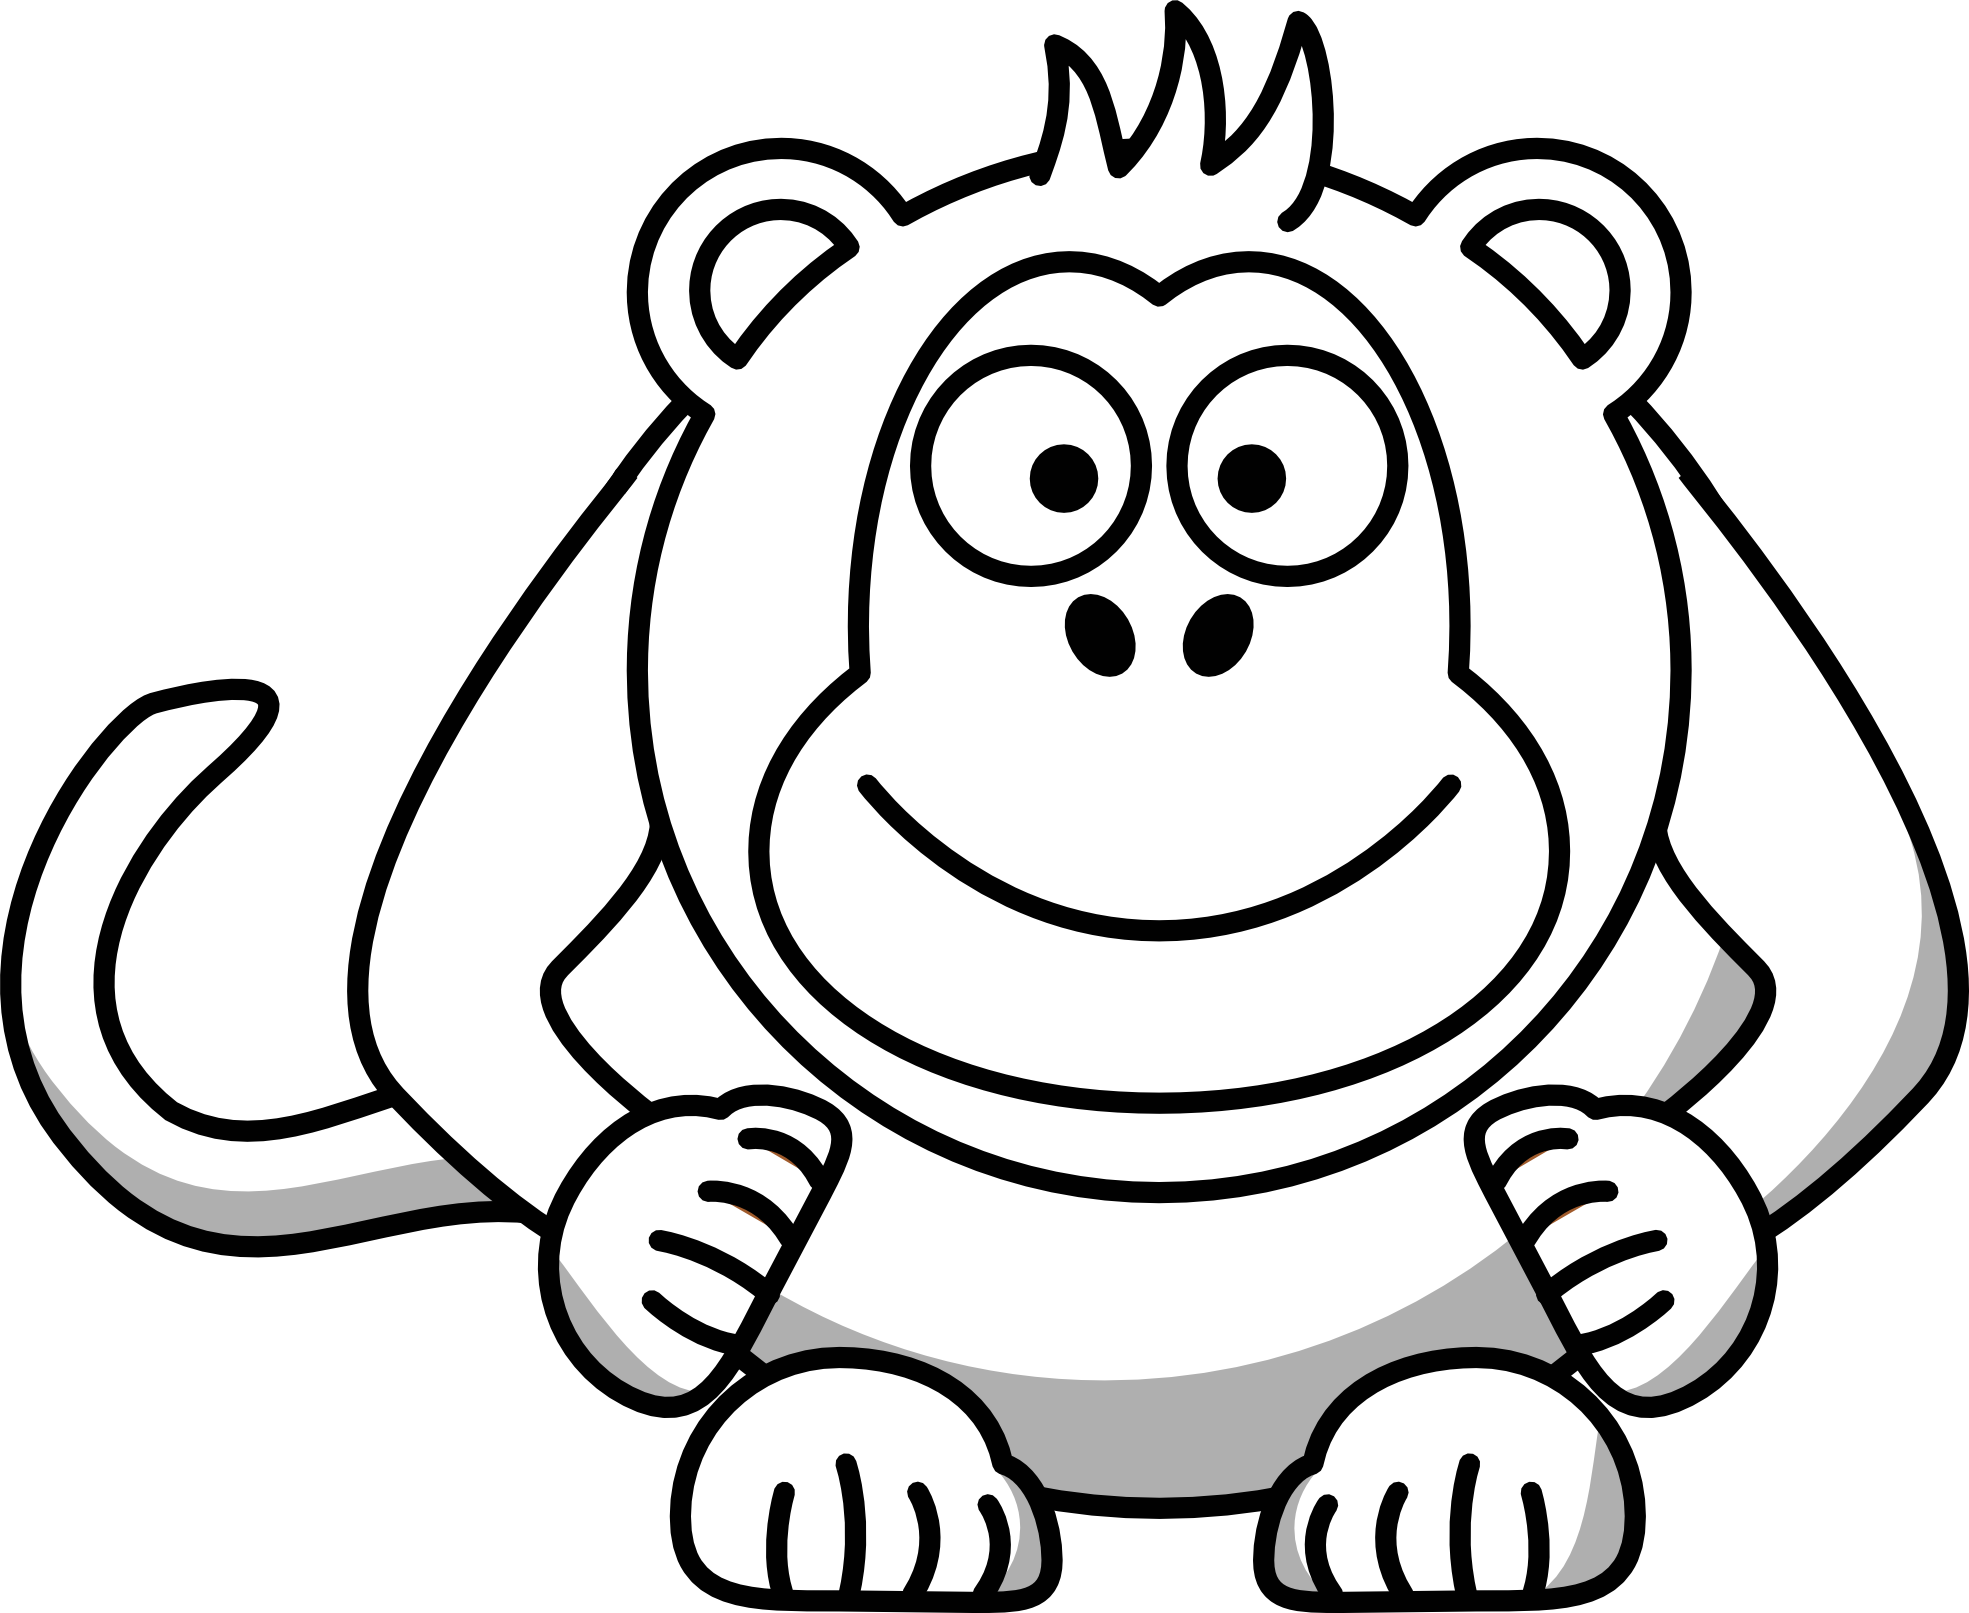 Black and white . Number 1 clipart cartoon